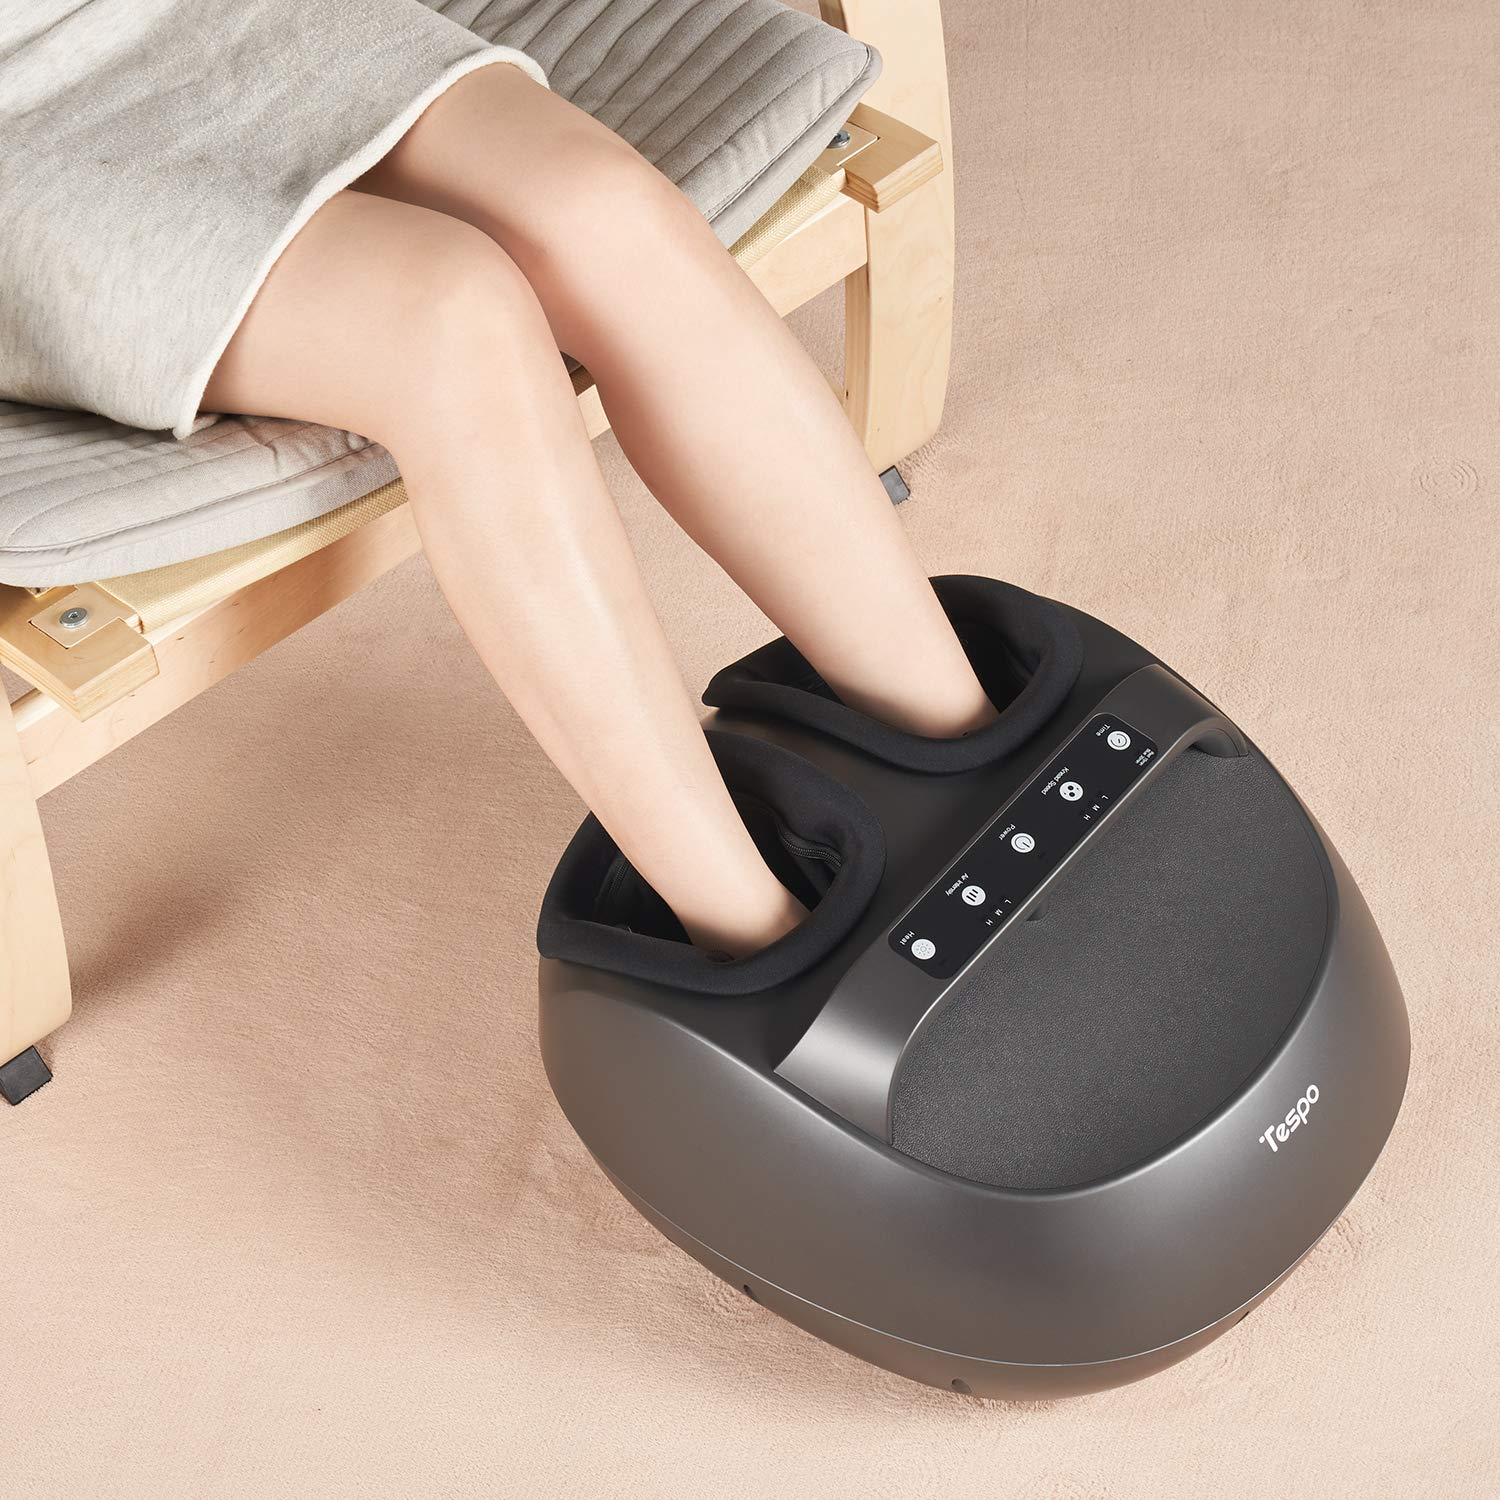 Shiatsu Foot Massager Machine with Heat – Tespo Deep Kneading Therapy, Foot Air Compression, Relieve Foot Pain from Plantar Fasciitis, Improve Blood Circulation